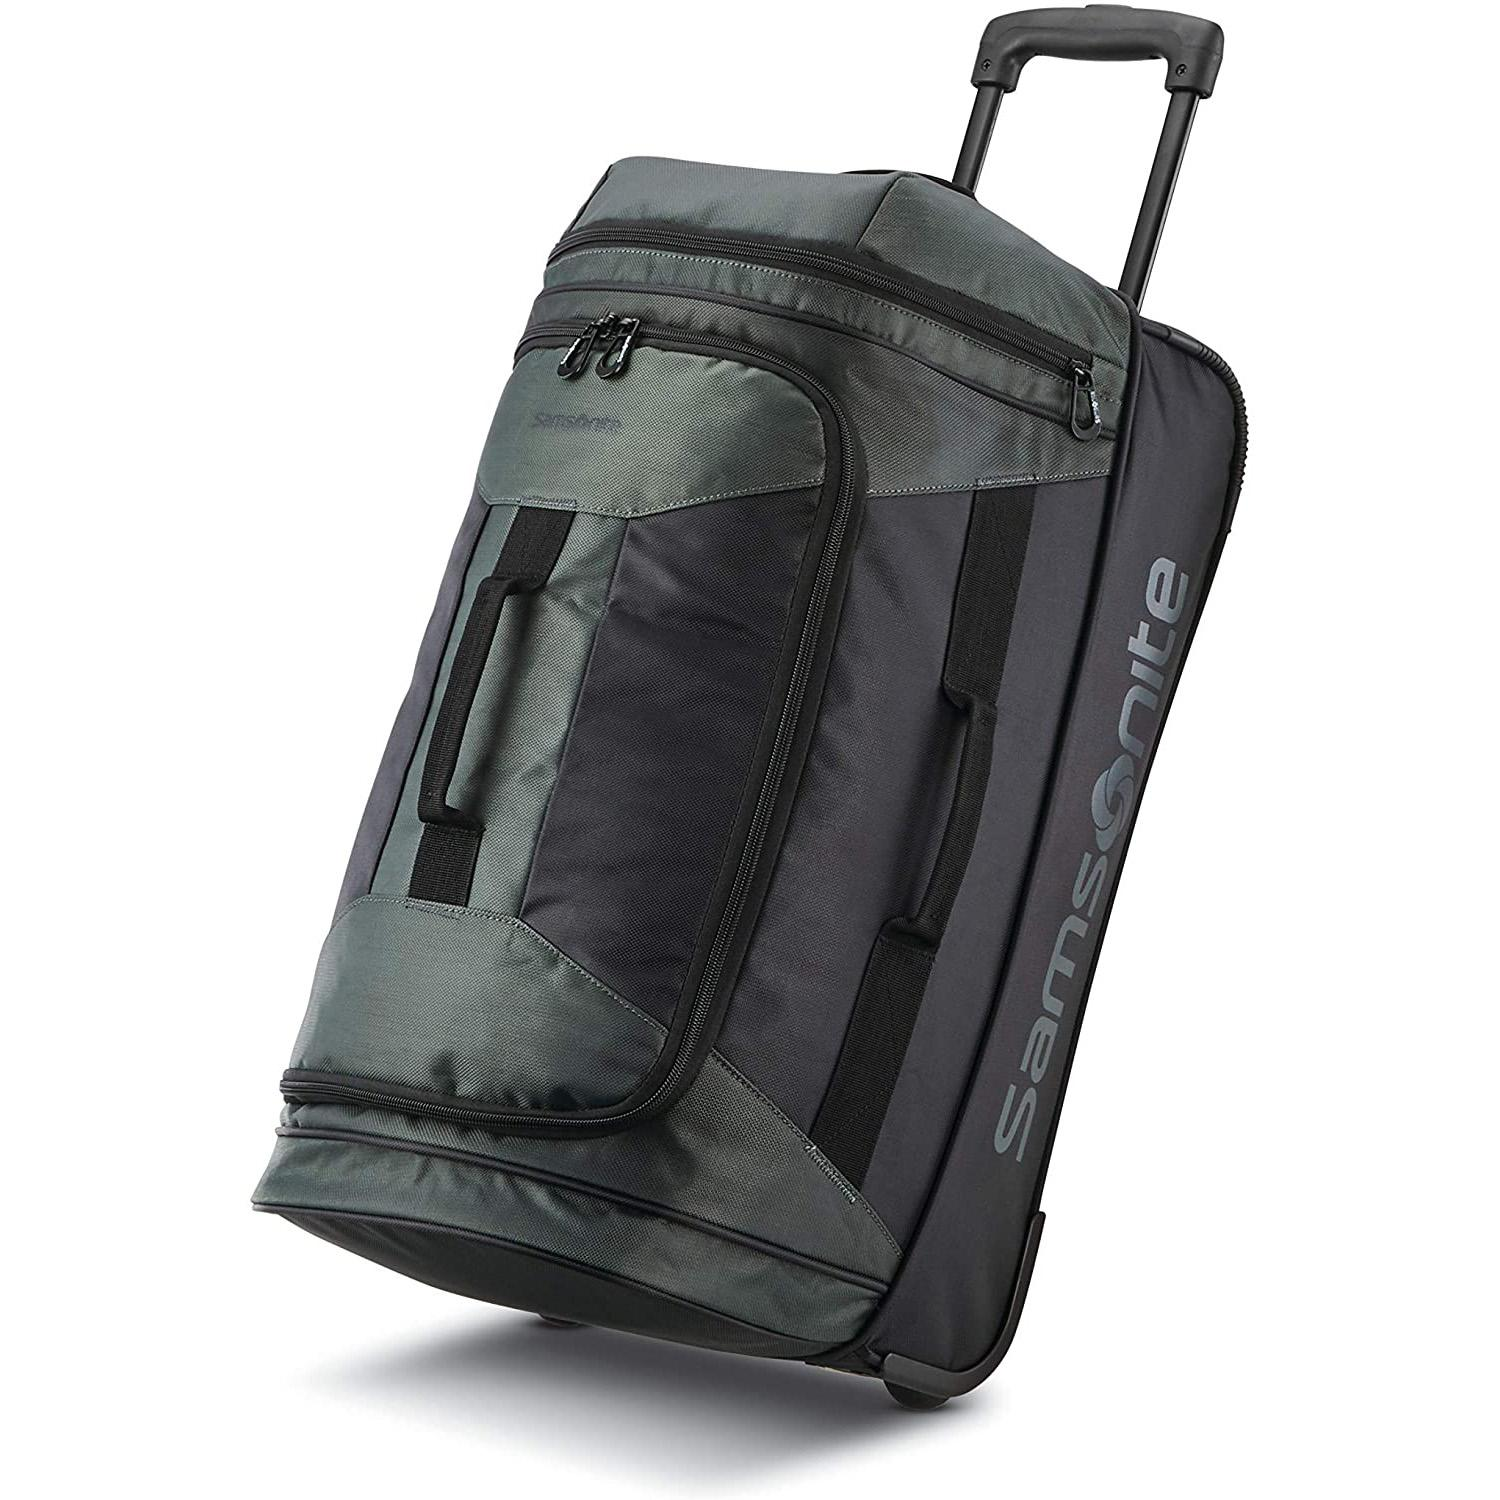 Samsonite Andante 2 Drop Bottom Wheeled Rolling Duffel Bags for $22.50 Shipped